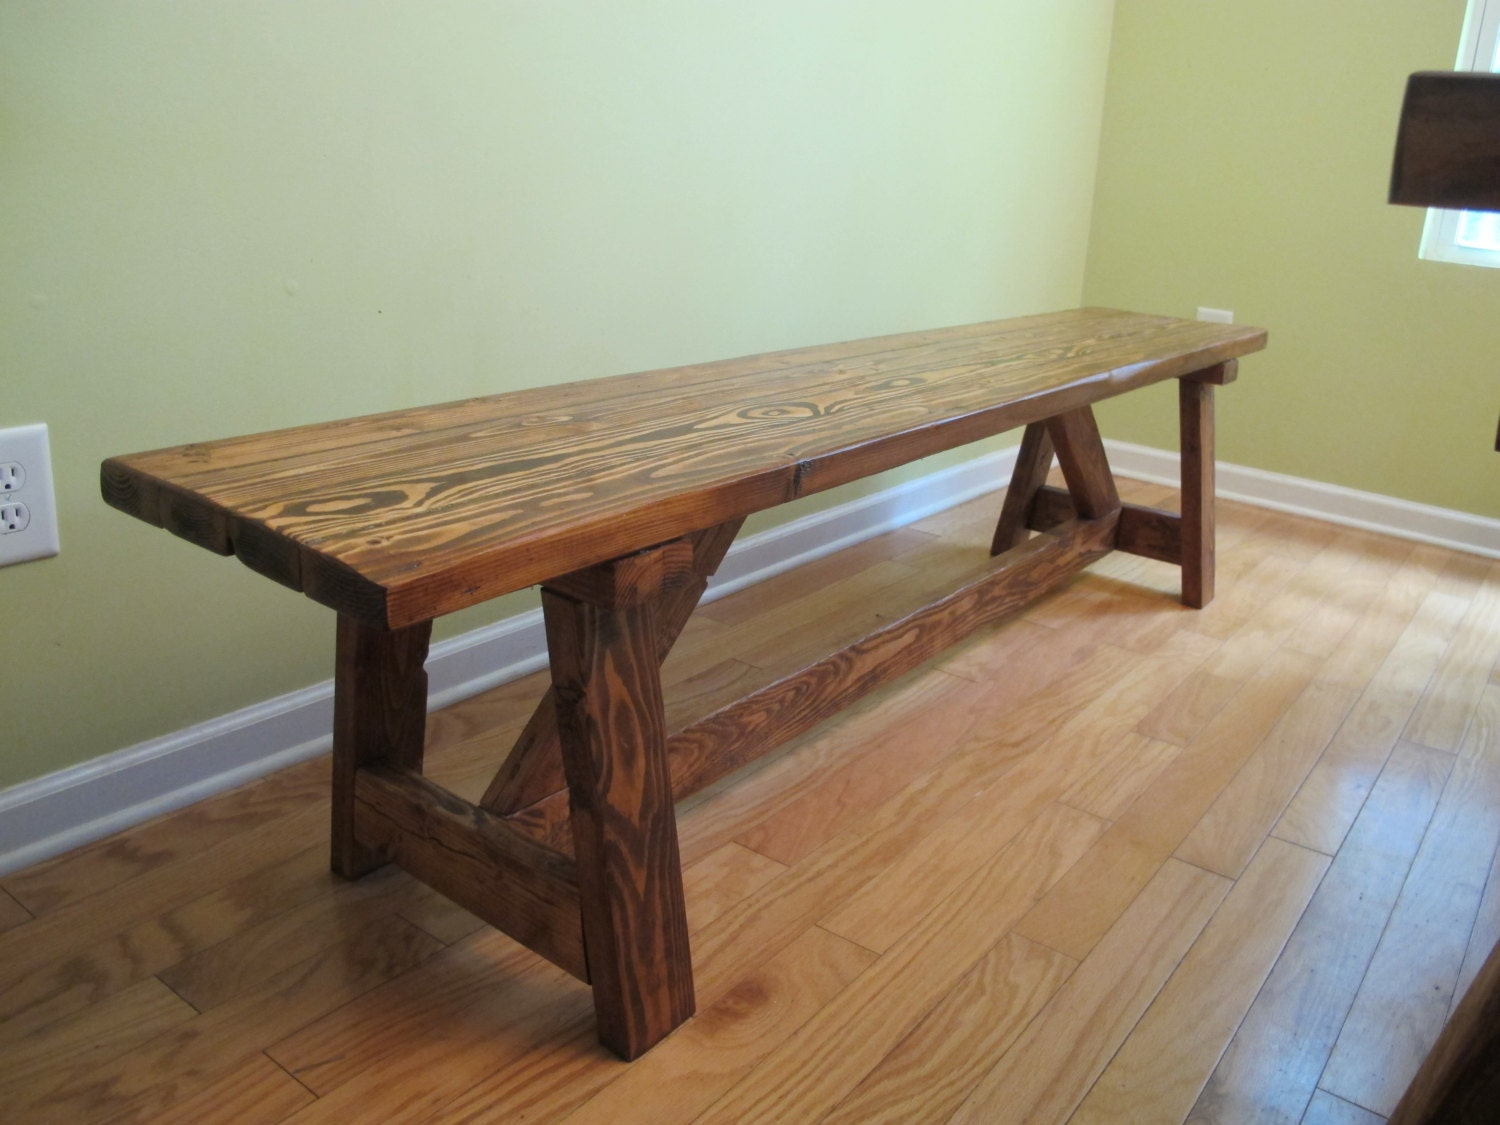 Farmhouse rustic wood bench by ngfoothillsfurniture on etsy